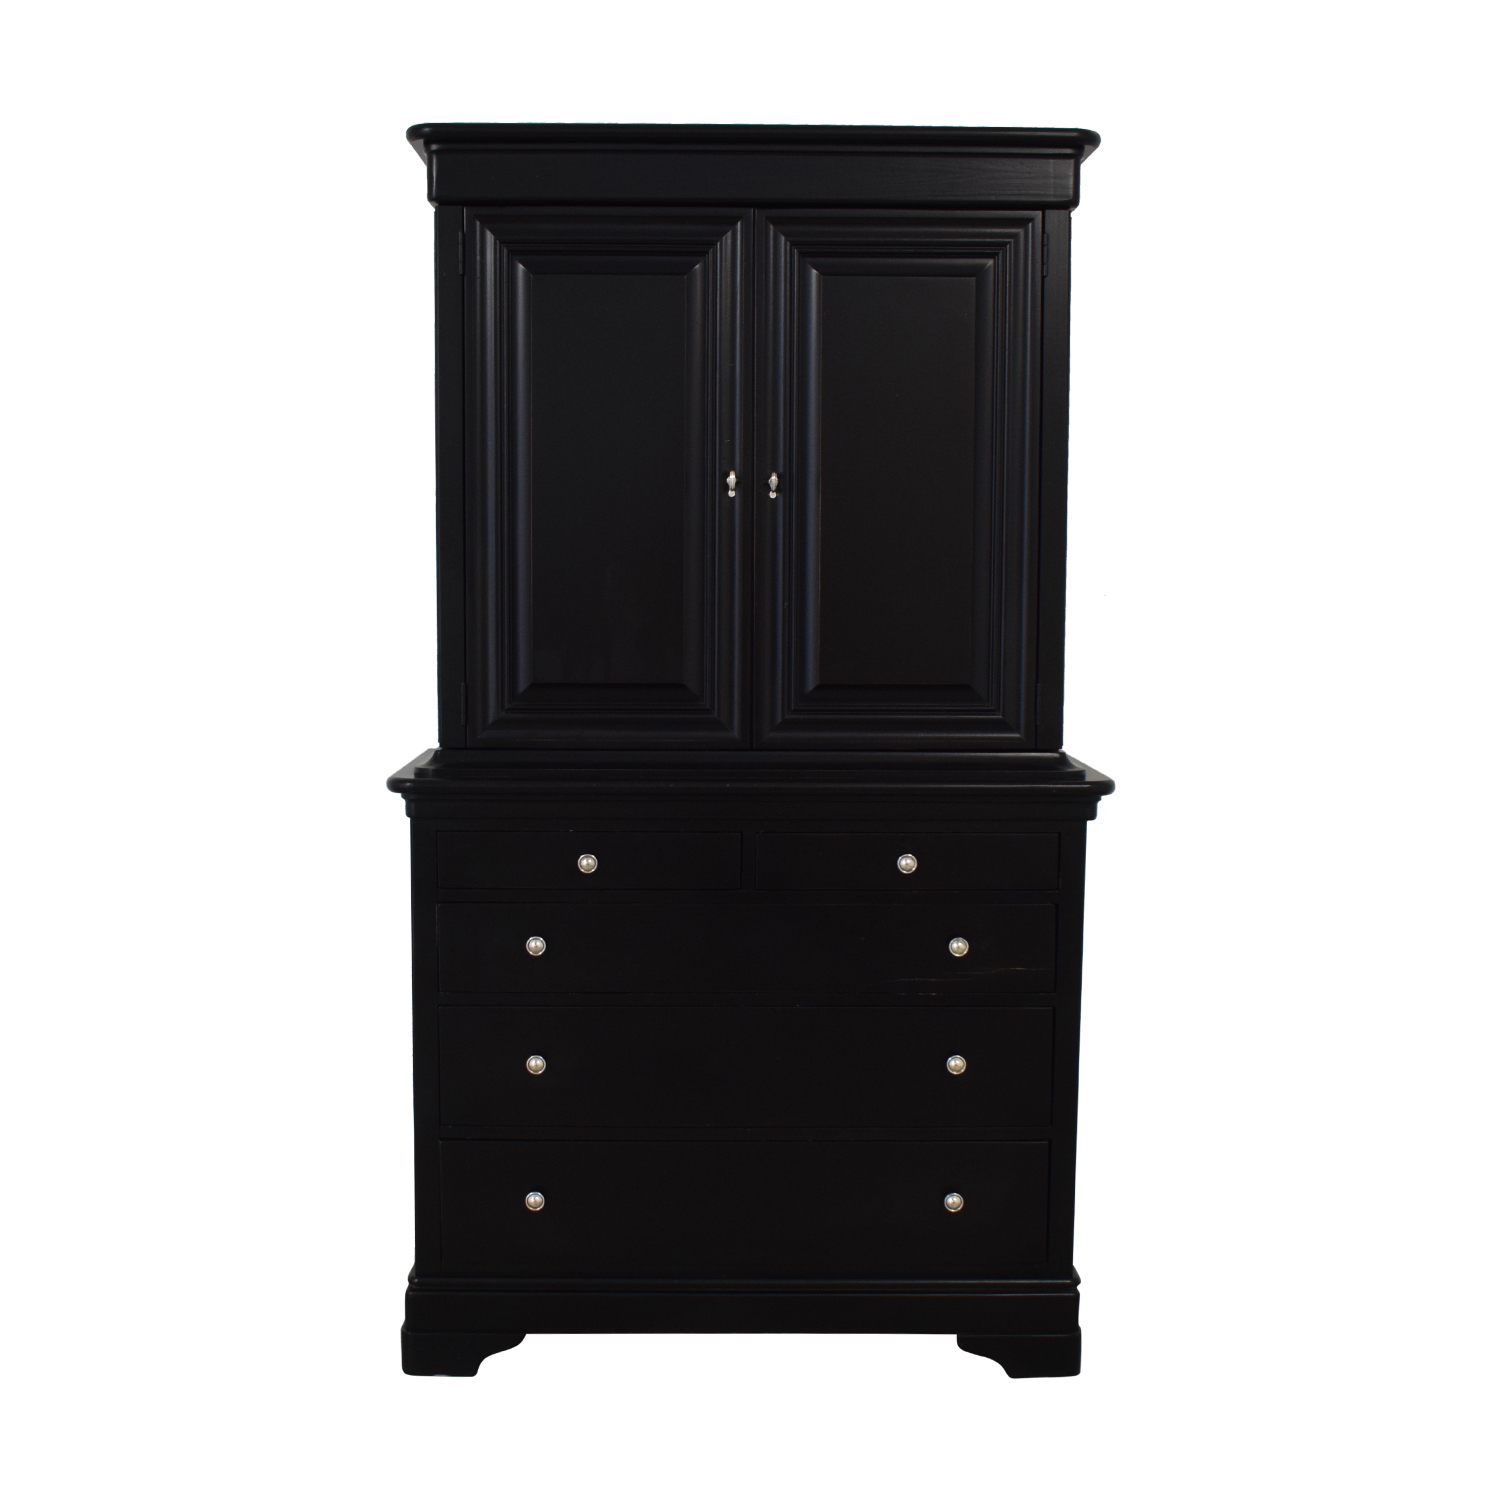 Stanley Furniture Stanley Furniture Armoire black